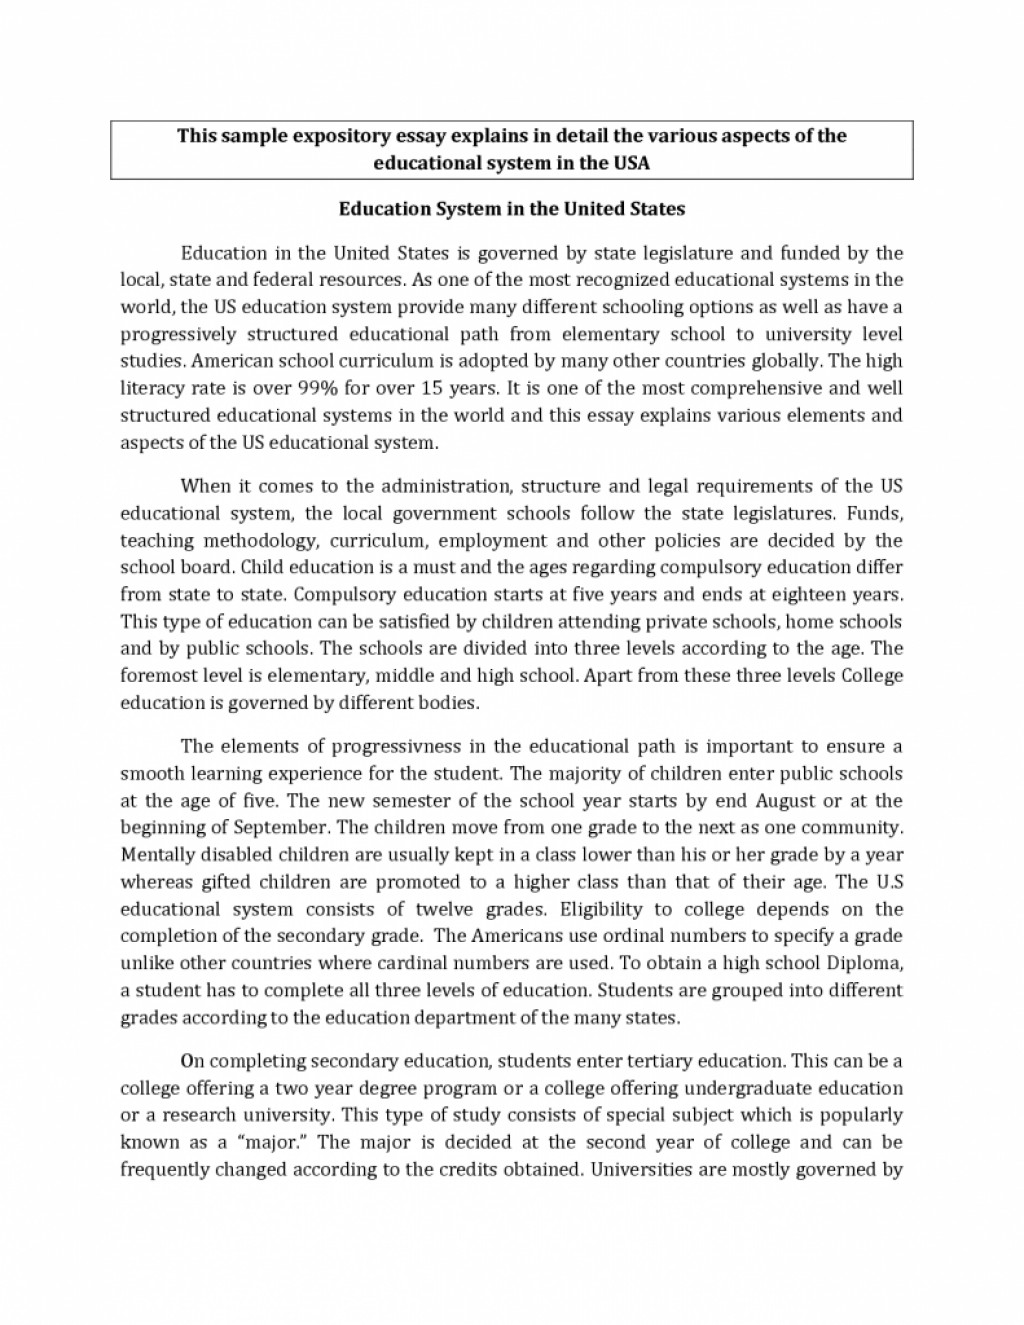 014 Informative Research Paper Topics For High School Students Essay Examples Of Essays Samples Expository Middle Pdf Excellent Topic Ideas Large